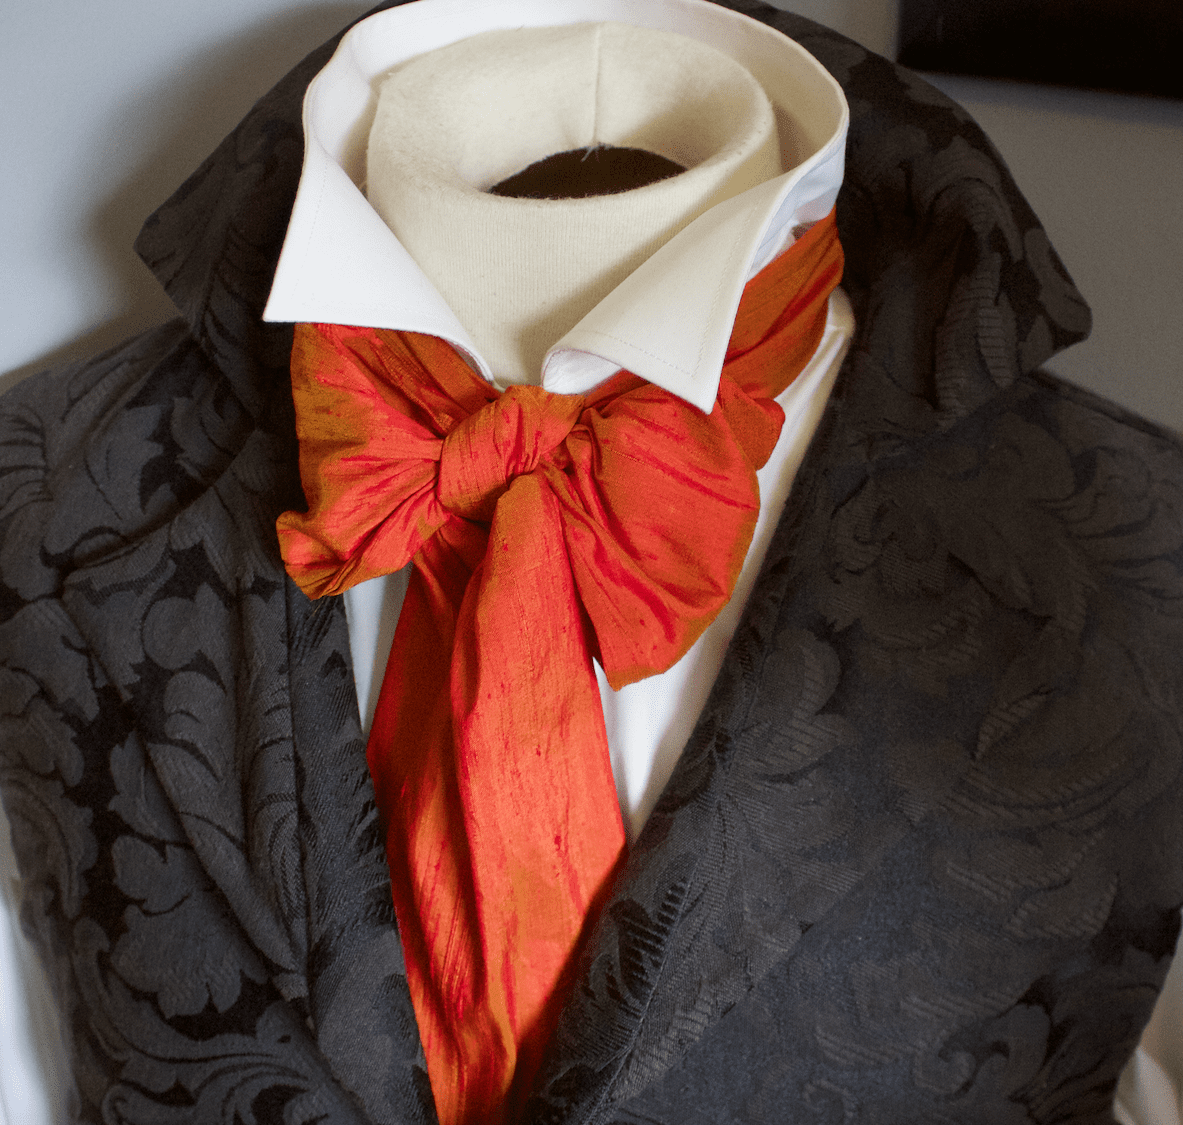 REGENCY SCARF Victorian Style Ascot Tie Cravat � Flame Gold Dupioni Silk - 6 inch width